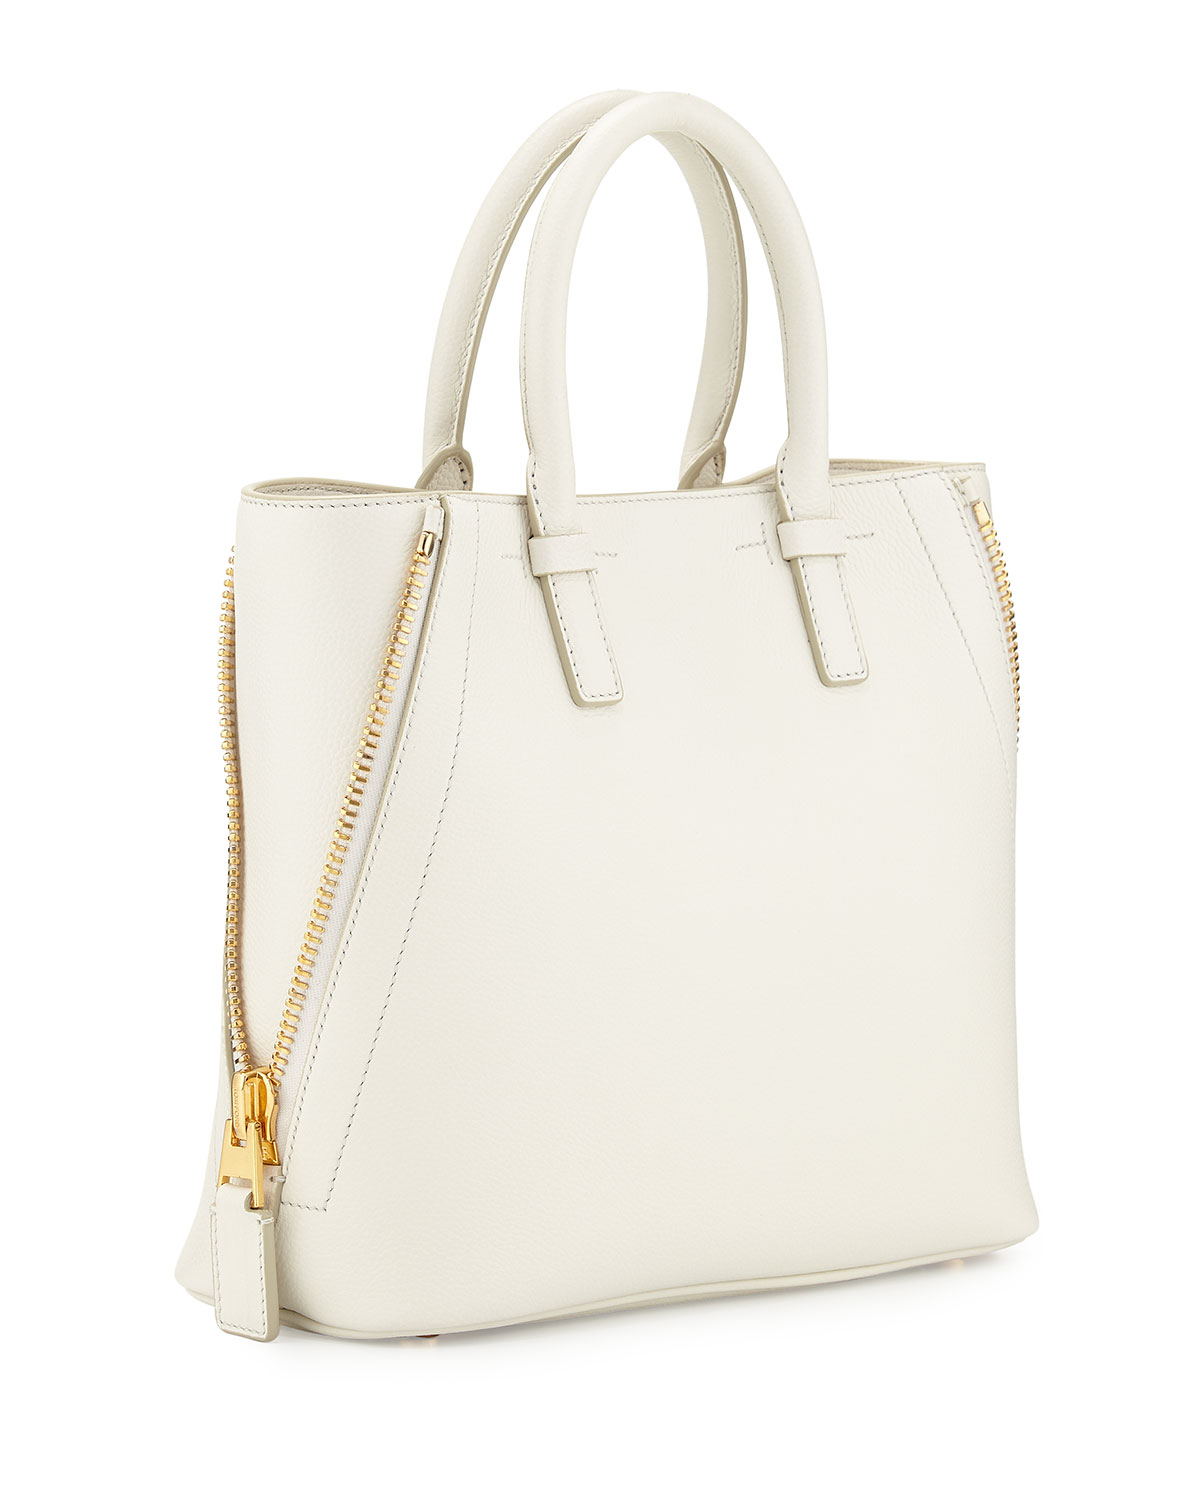 3a93ee0d1b Lyst - Tom Ford Jennifer Small Trap Calfskin Tote Bag in Natural